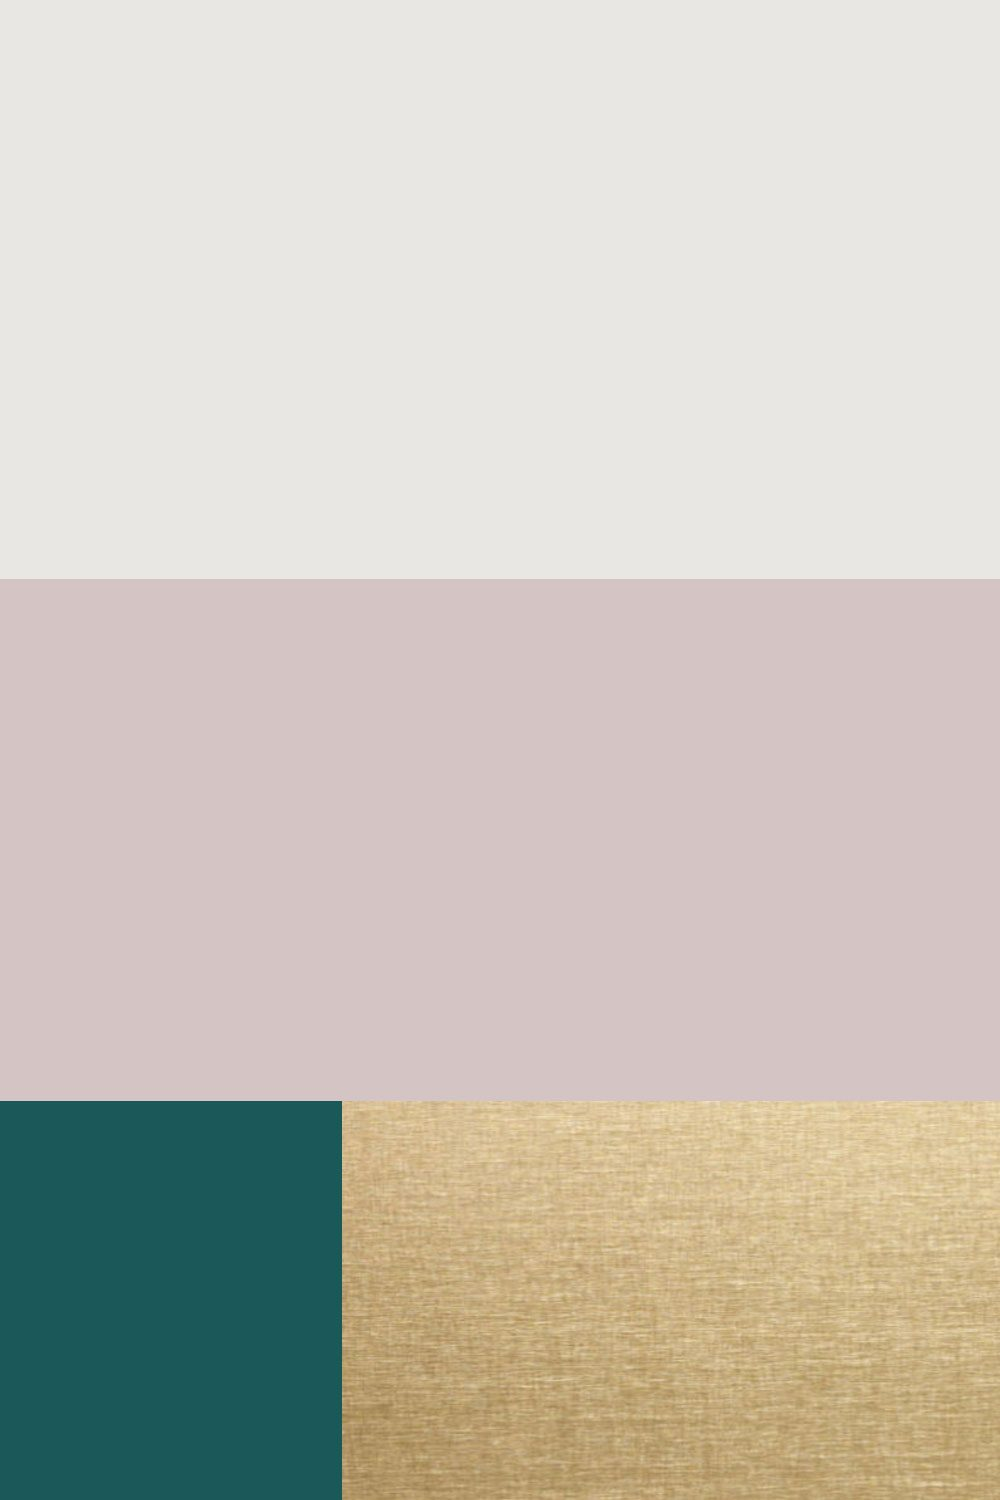 colour palette from affordable interior e-design service